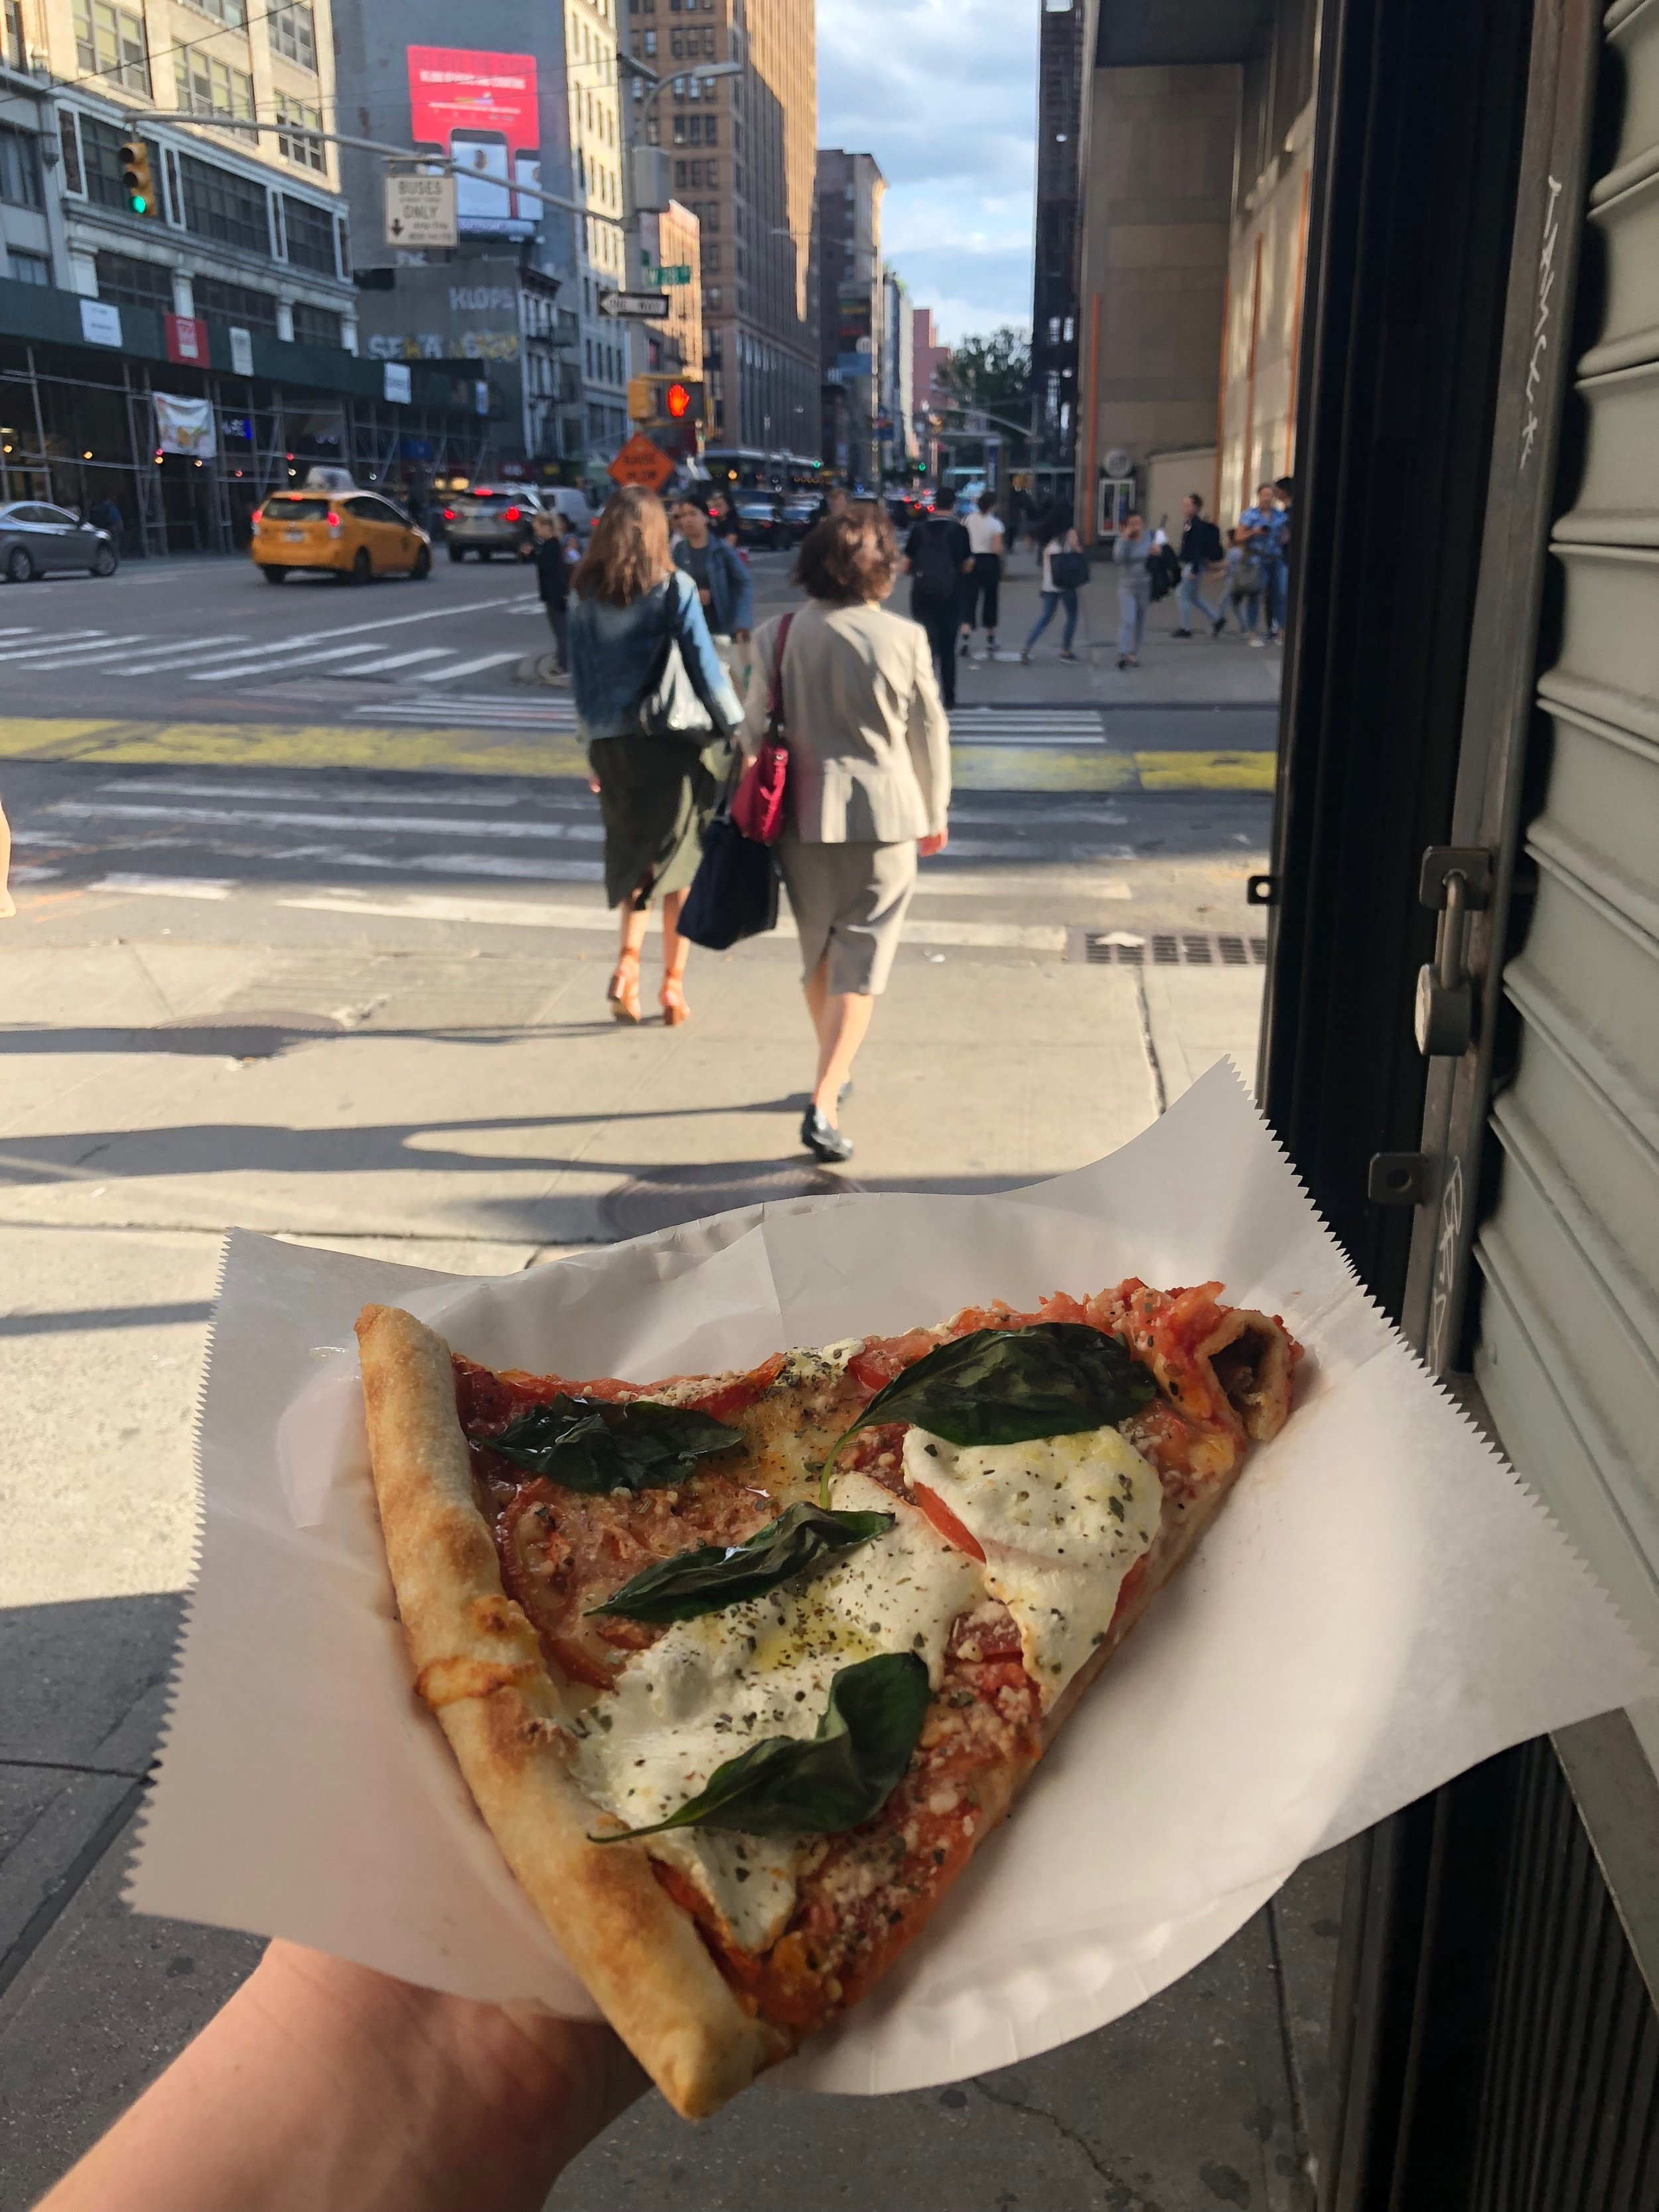 Pizza slices in NYC